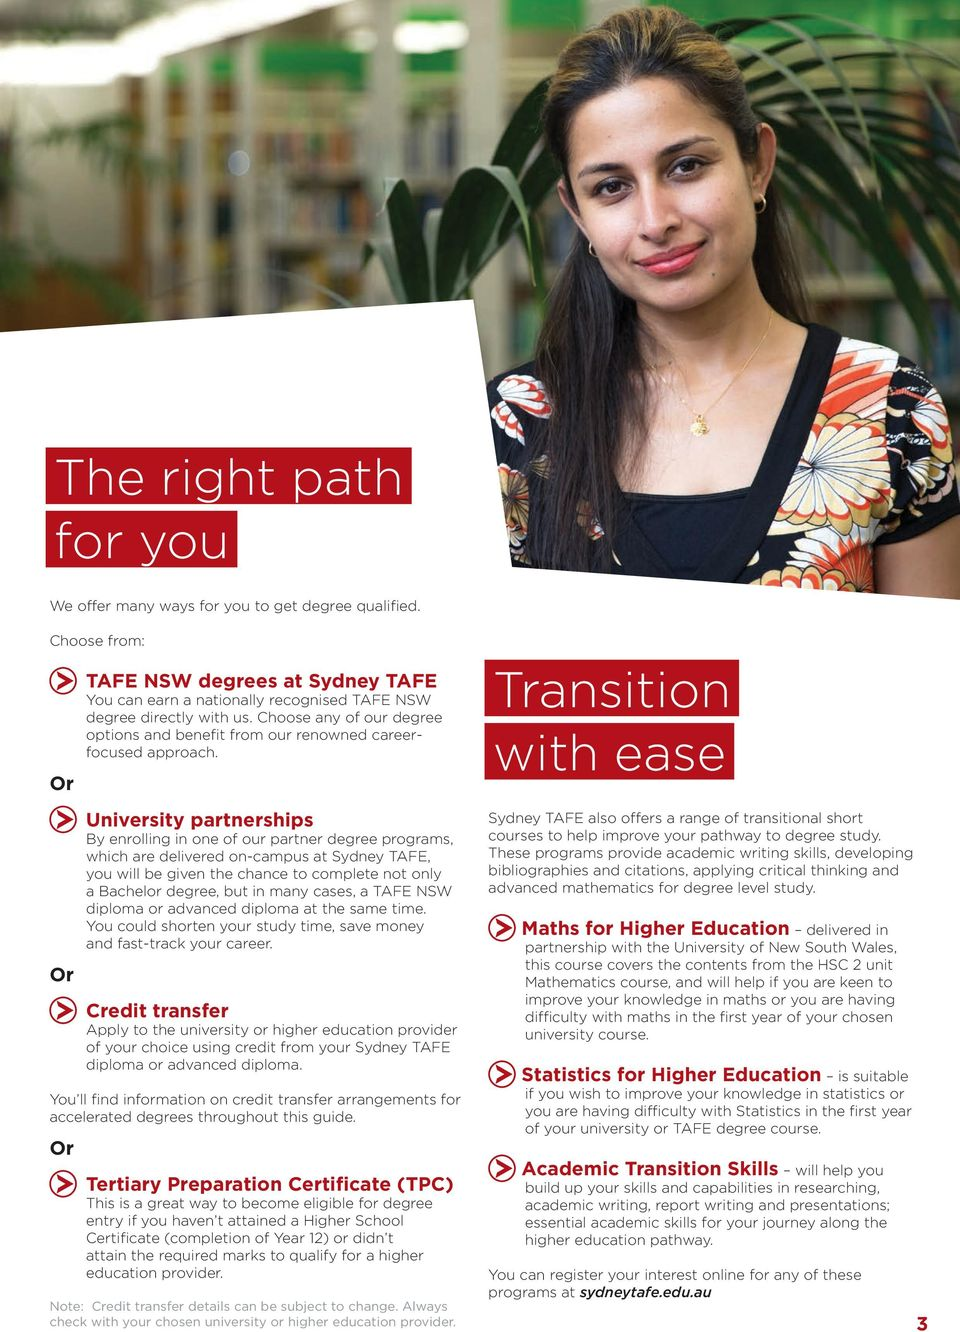 University partnerships By enrolling in one of our partner degree programs, which are delivered on-campus at Sydney TAFE, you will be given the chance to complete not only a Bachelor degree, but in